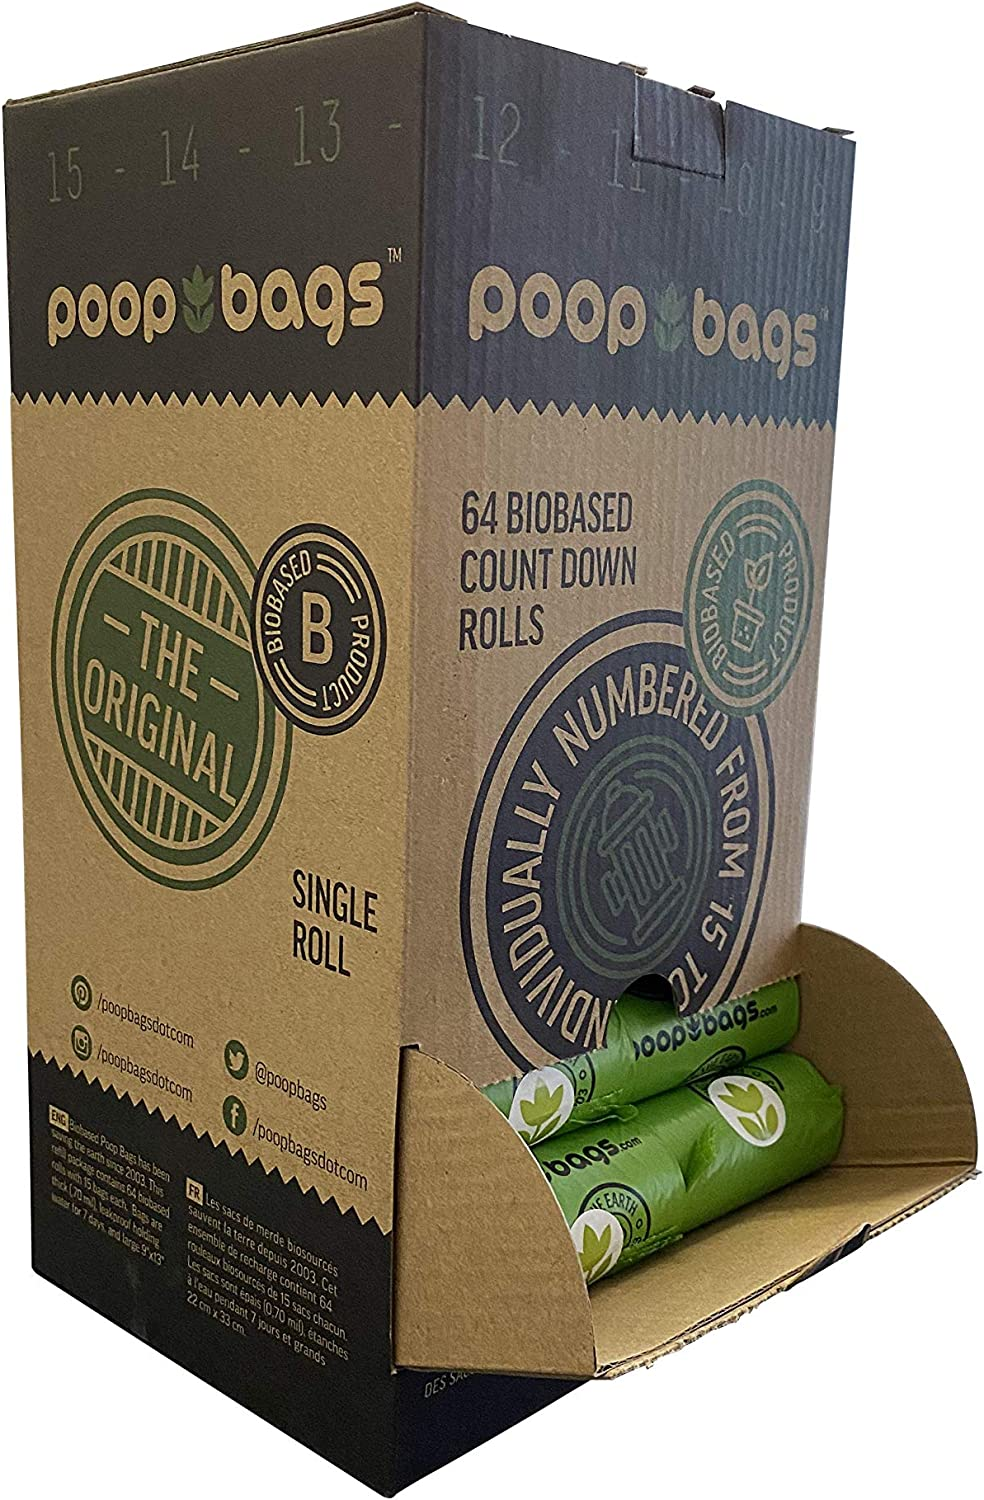 The Original Poop Bags SuperBox con 960 bolsas de caca biológicas USDA.